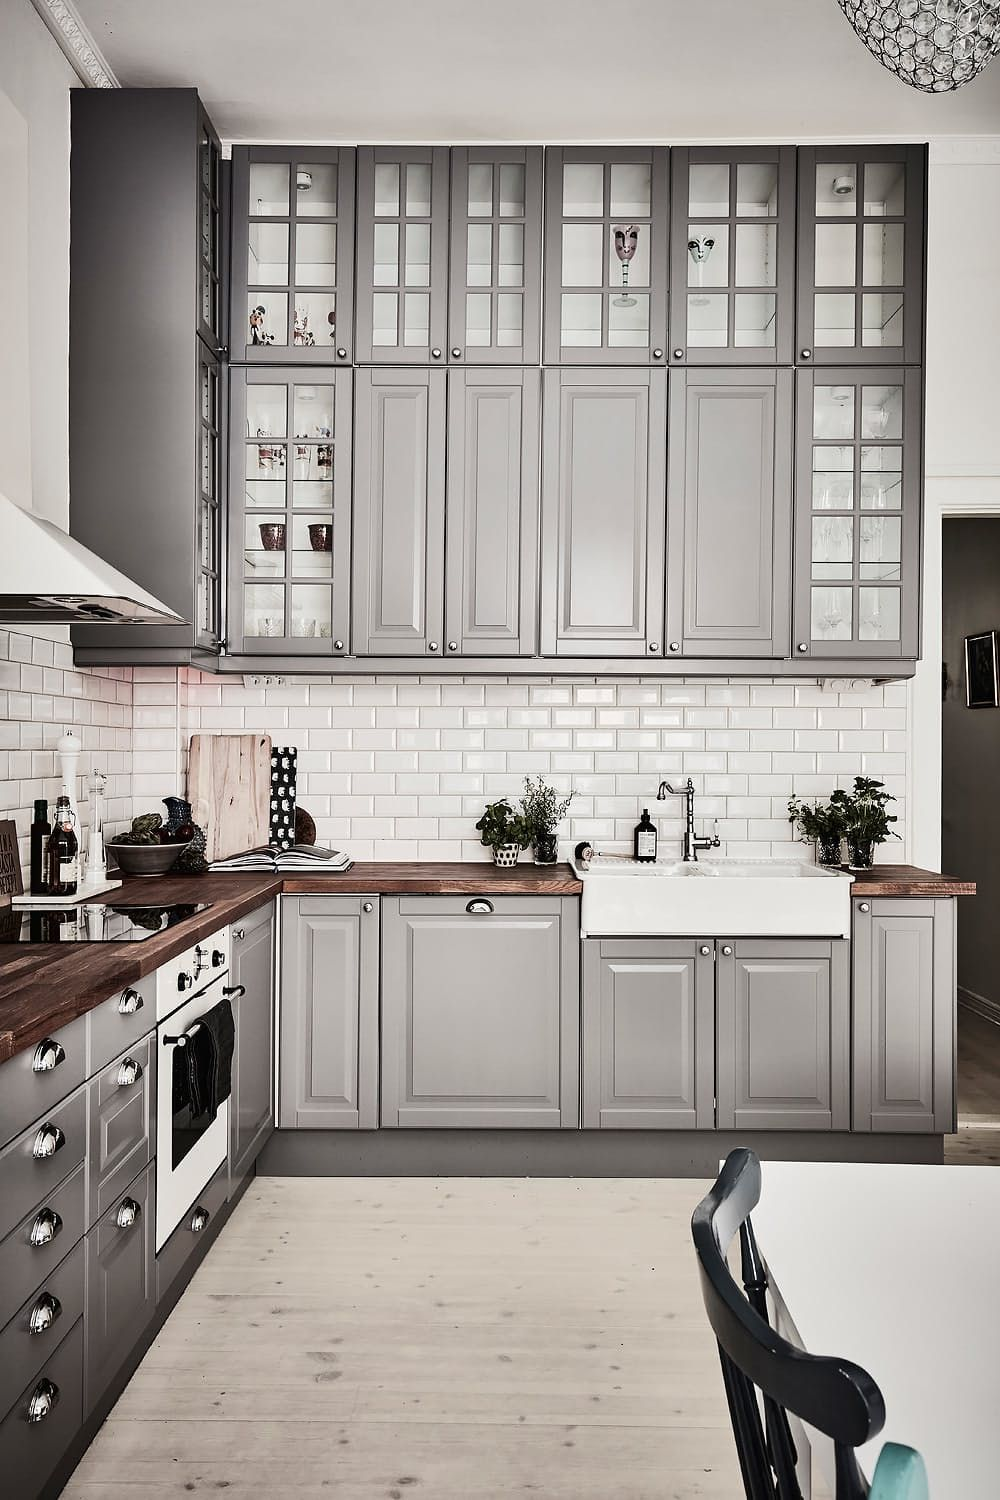 Inspiring Kitchens You Won't Believe are IKEA | iroquois ...